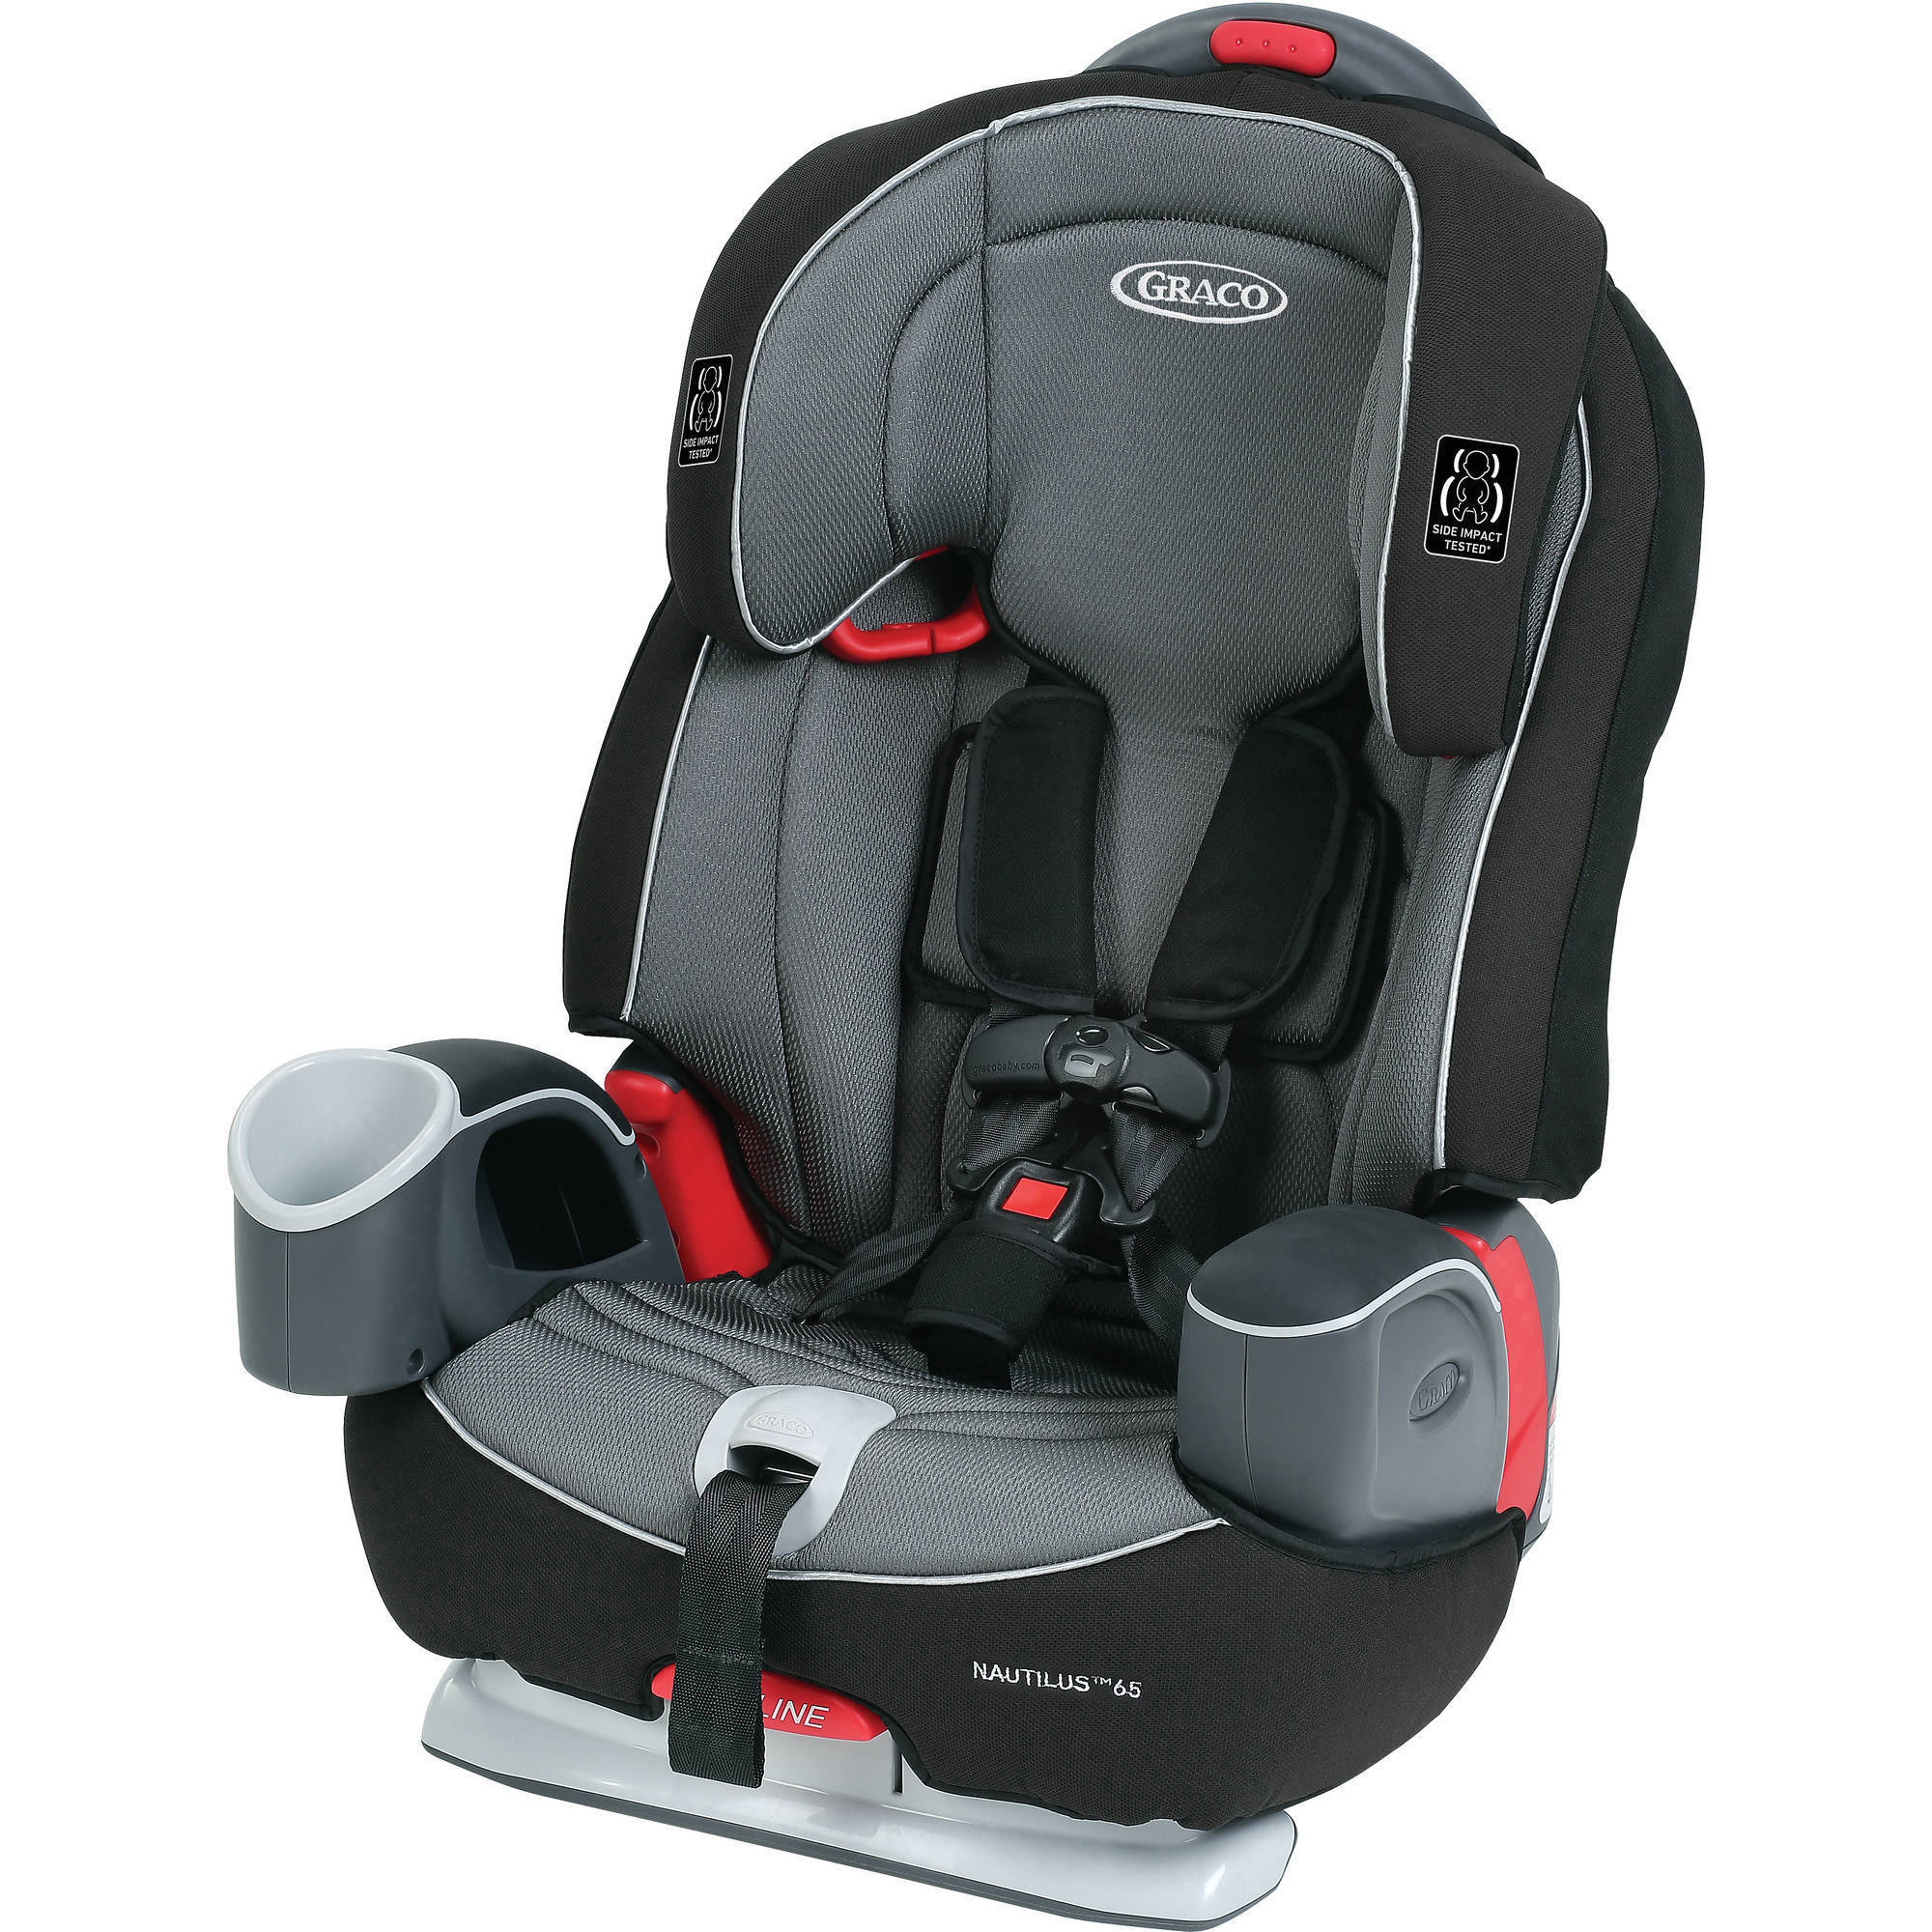 Graco Nautilus 65 3-in-1 Multi-Use Harness Booster Car Seat  sc 1 st  Walmart & Graco Nautilus 65 3-in-1 Multi-Use Harness Booster Car Seat ... islam-shia.org